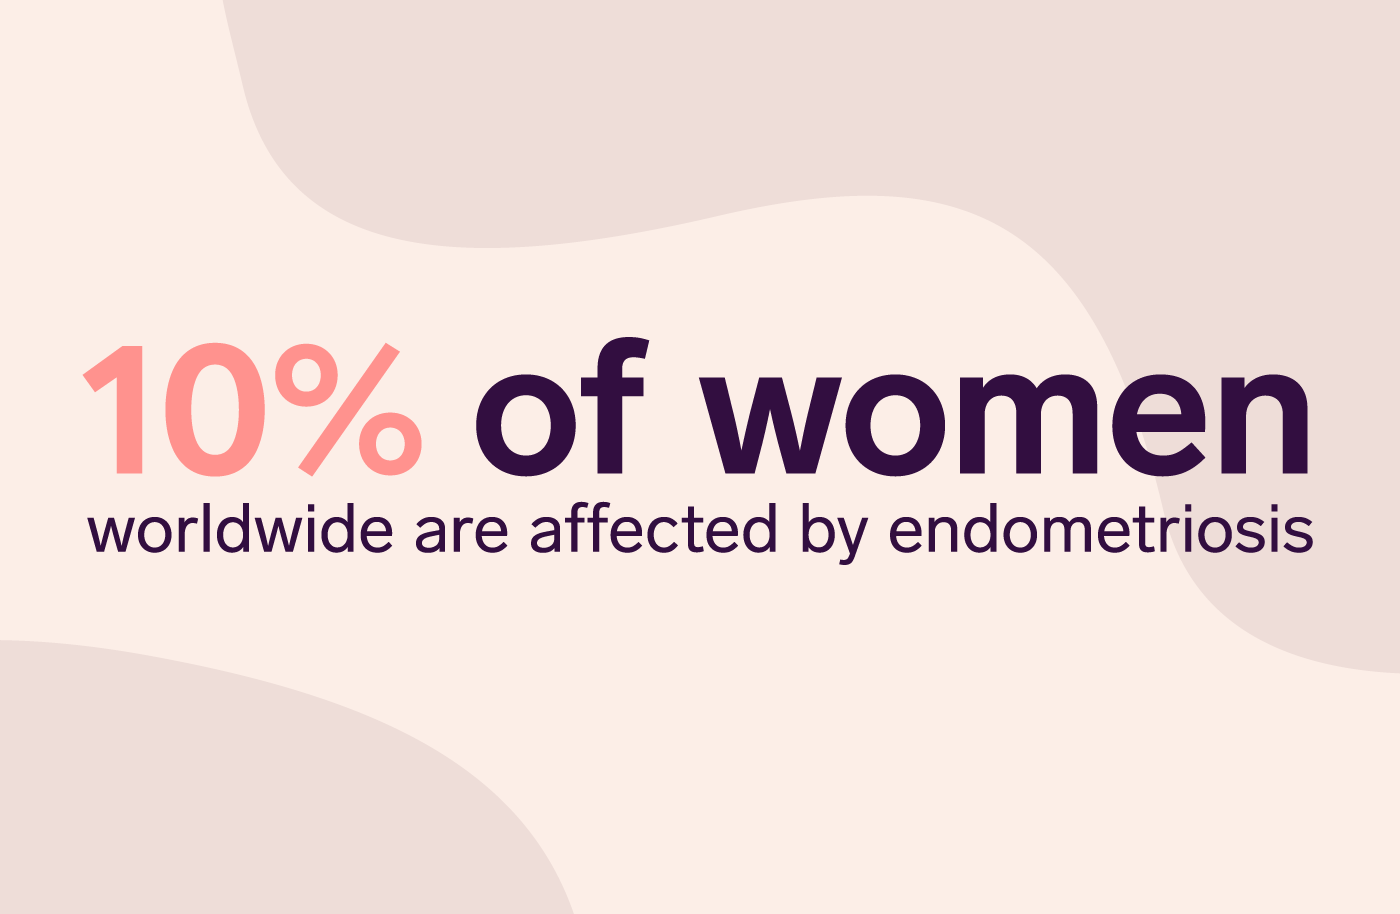 10% of women worldwide are affected by endometriosis